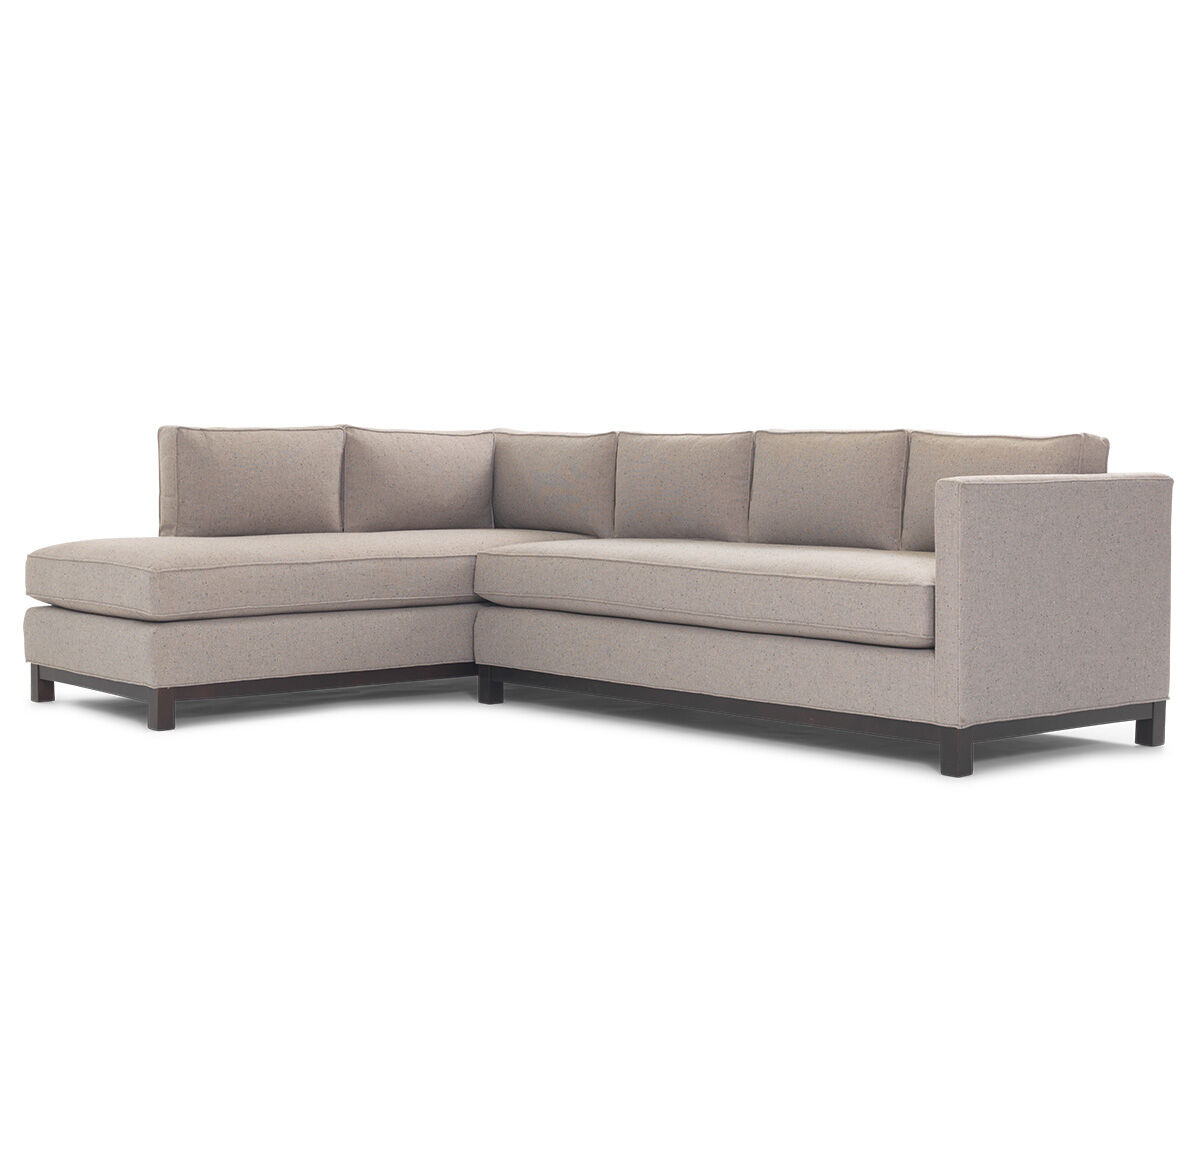 CLIFTON SECTIONAL SOFA, WHIT   STONE SOP, Hi Res